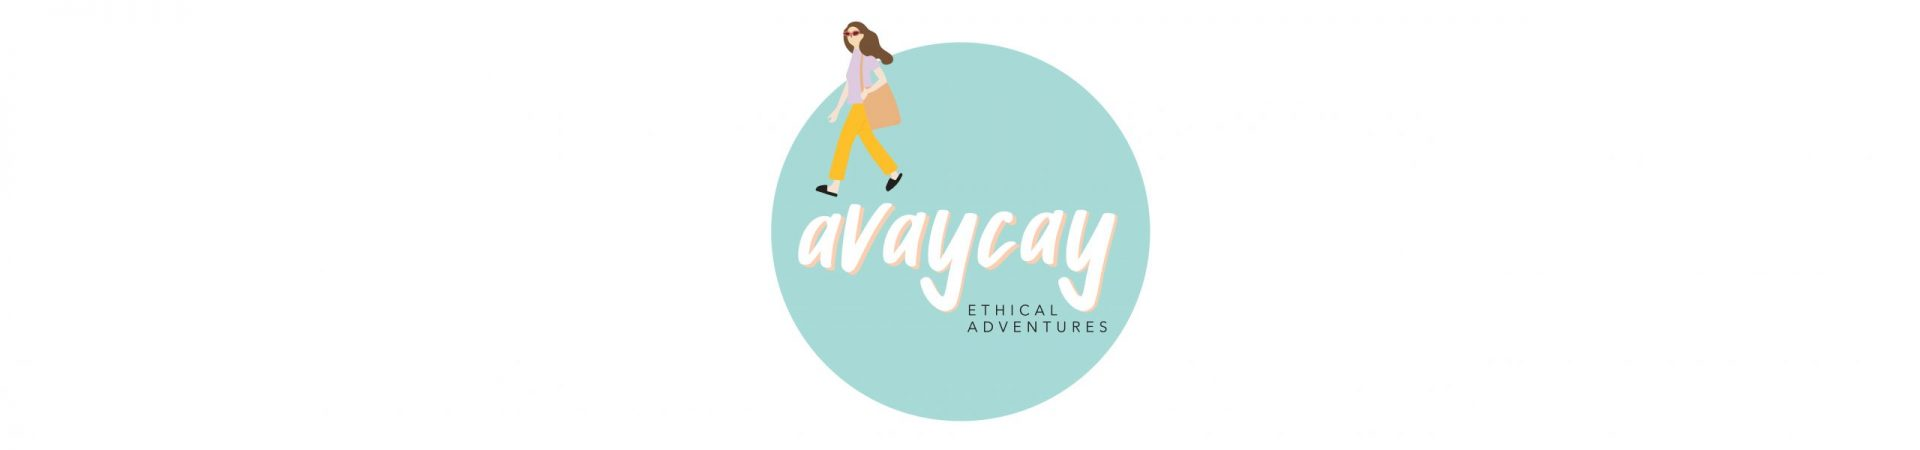 Tag: ethical clothing